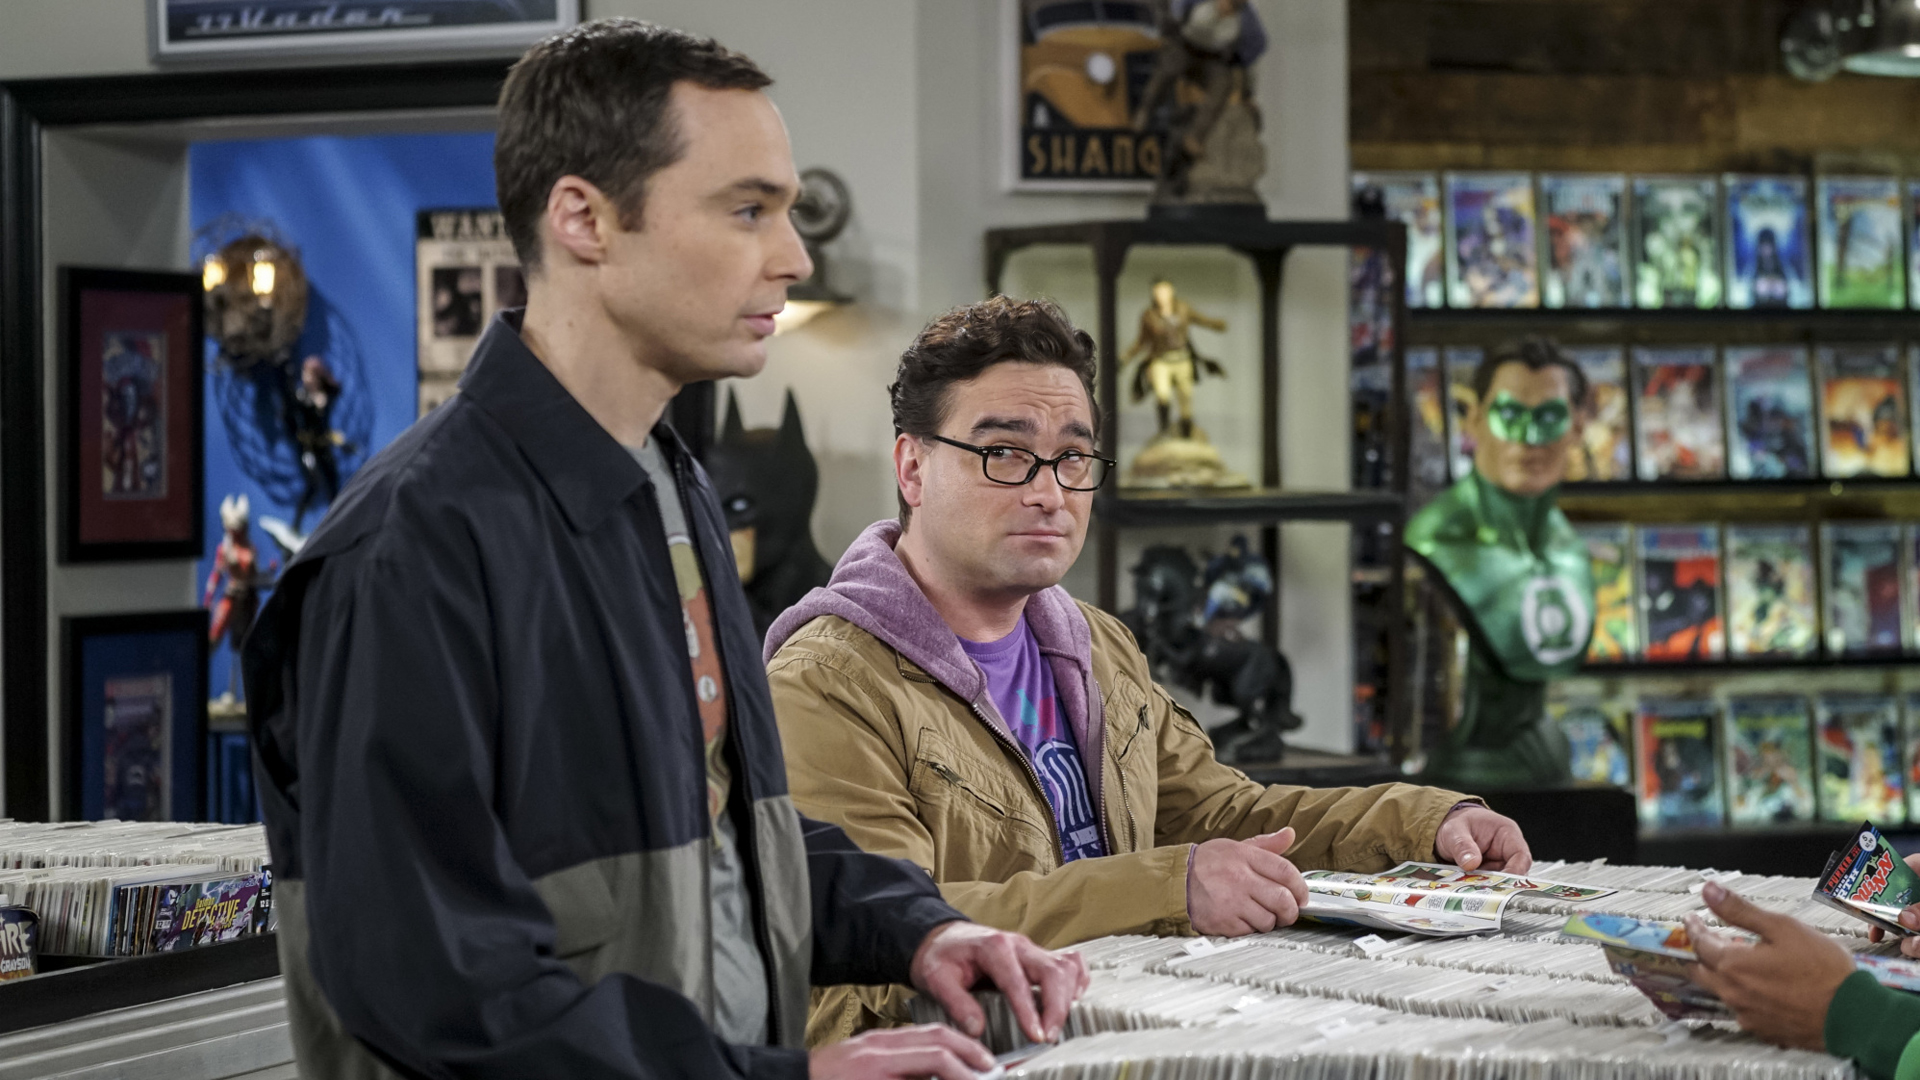 Leonard gives Sheldon an uncertain look at the comic book shop.